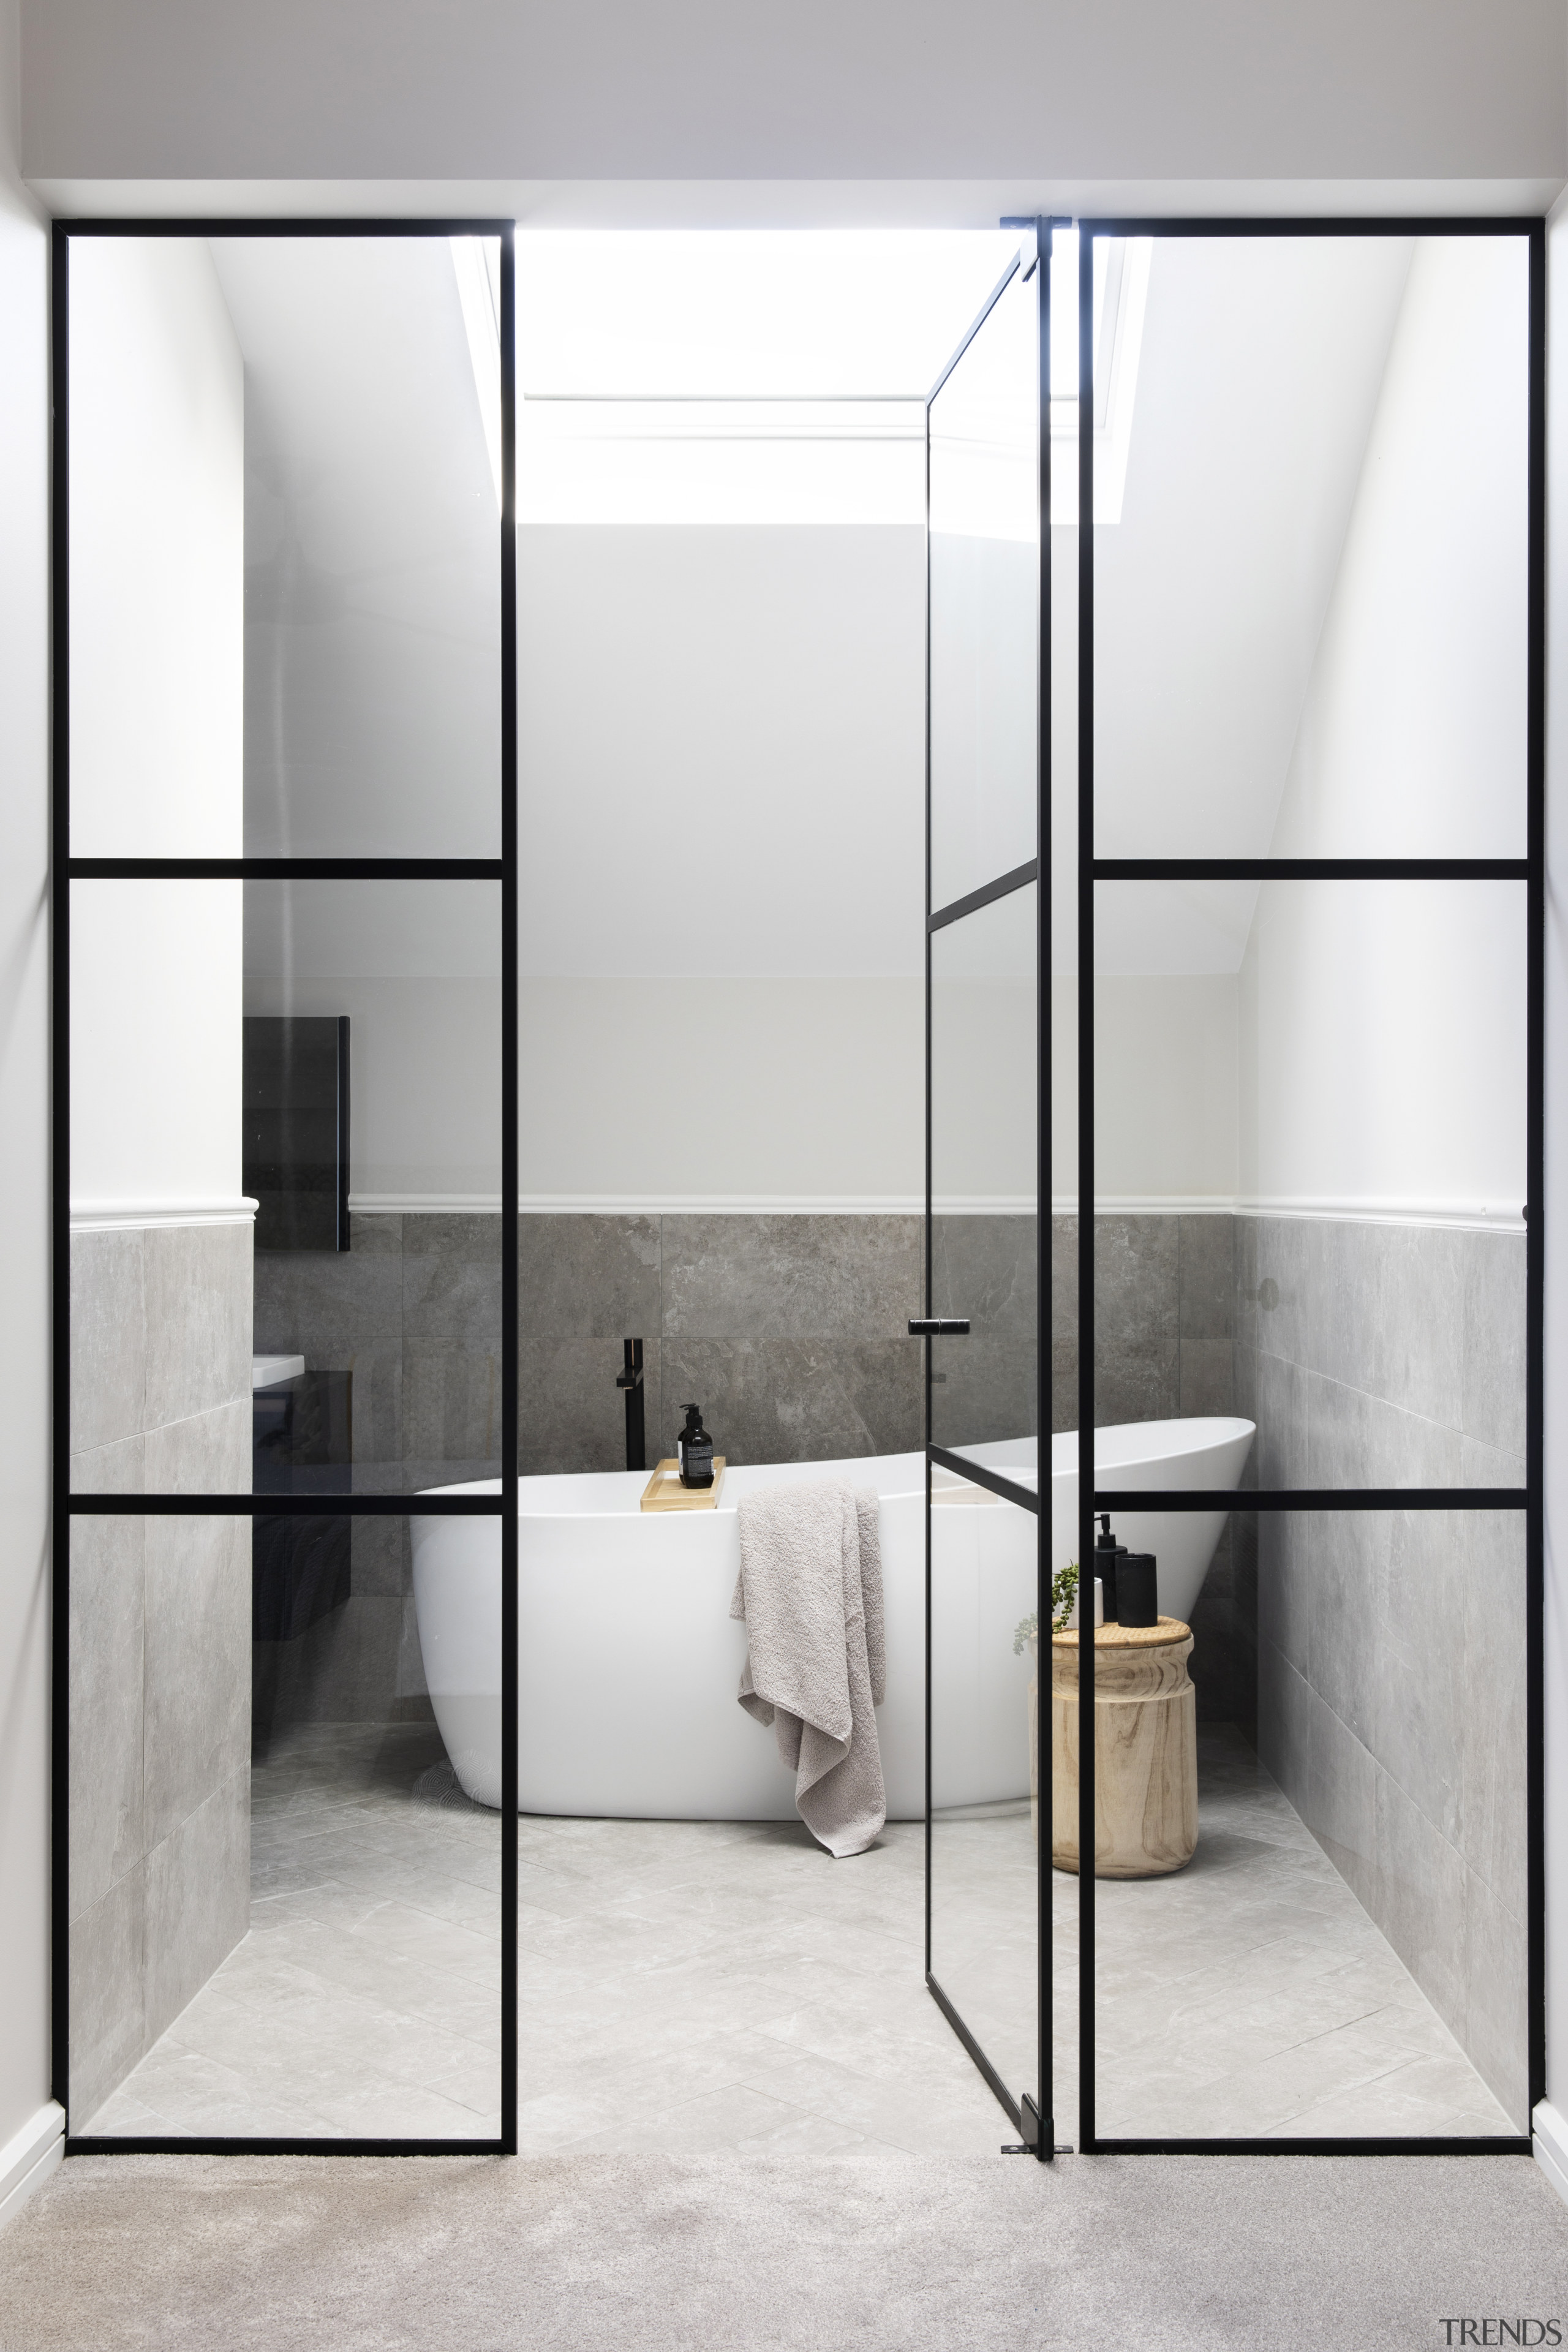 A black-framed glass wall leads to the light-filled